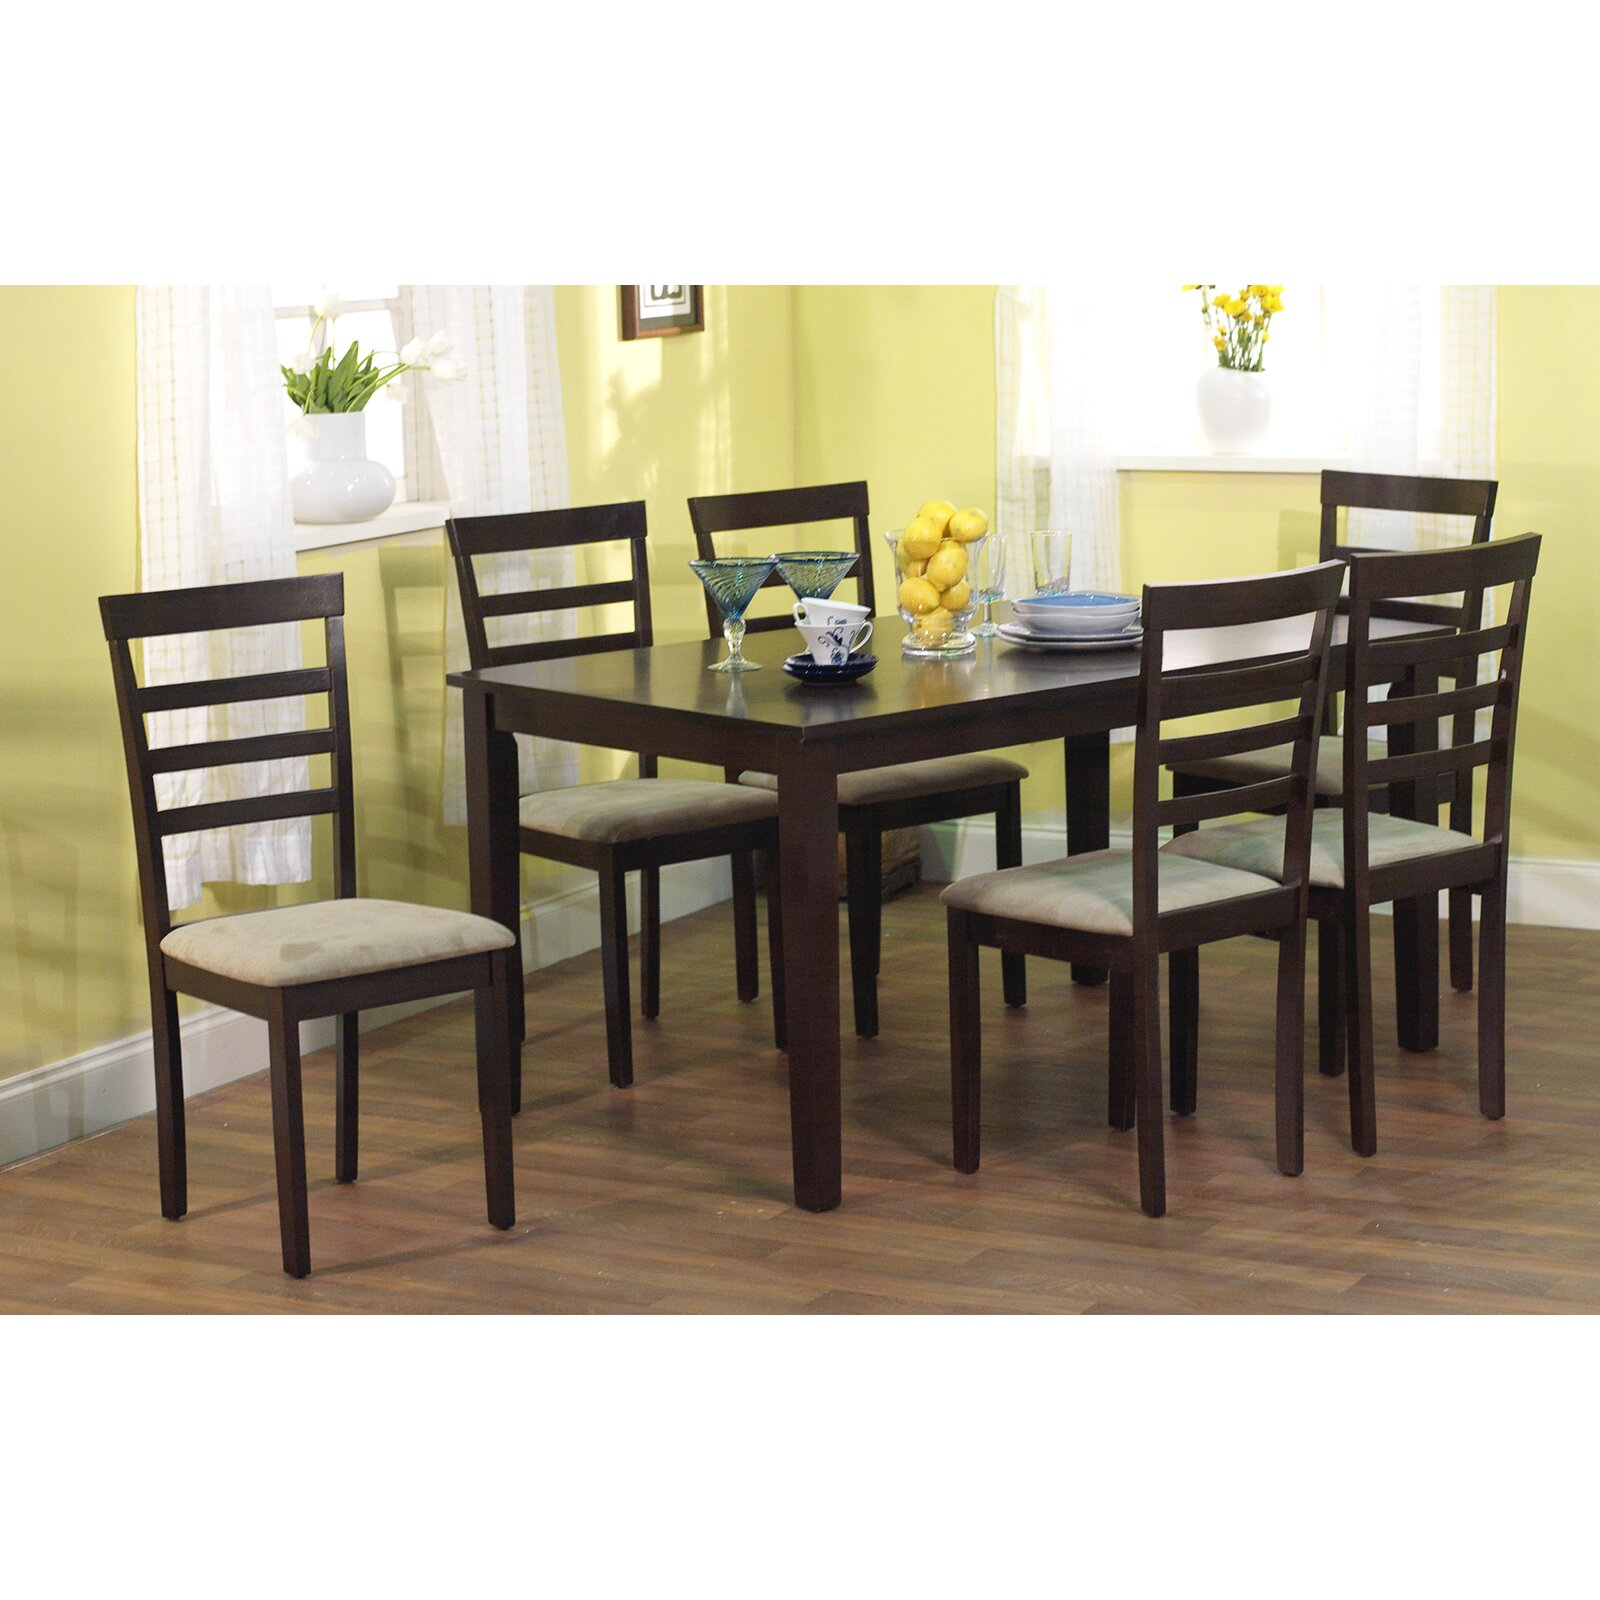 Tms havana 7 piece dining set reviews wayfair for 7 piece dining room set